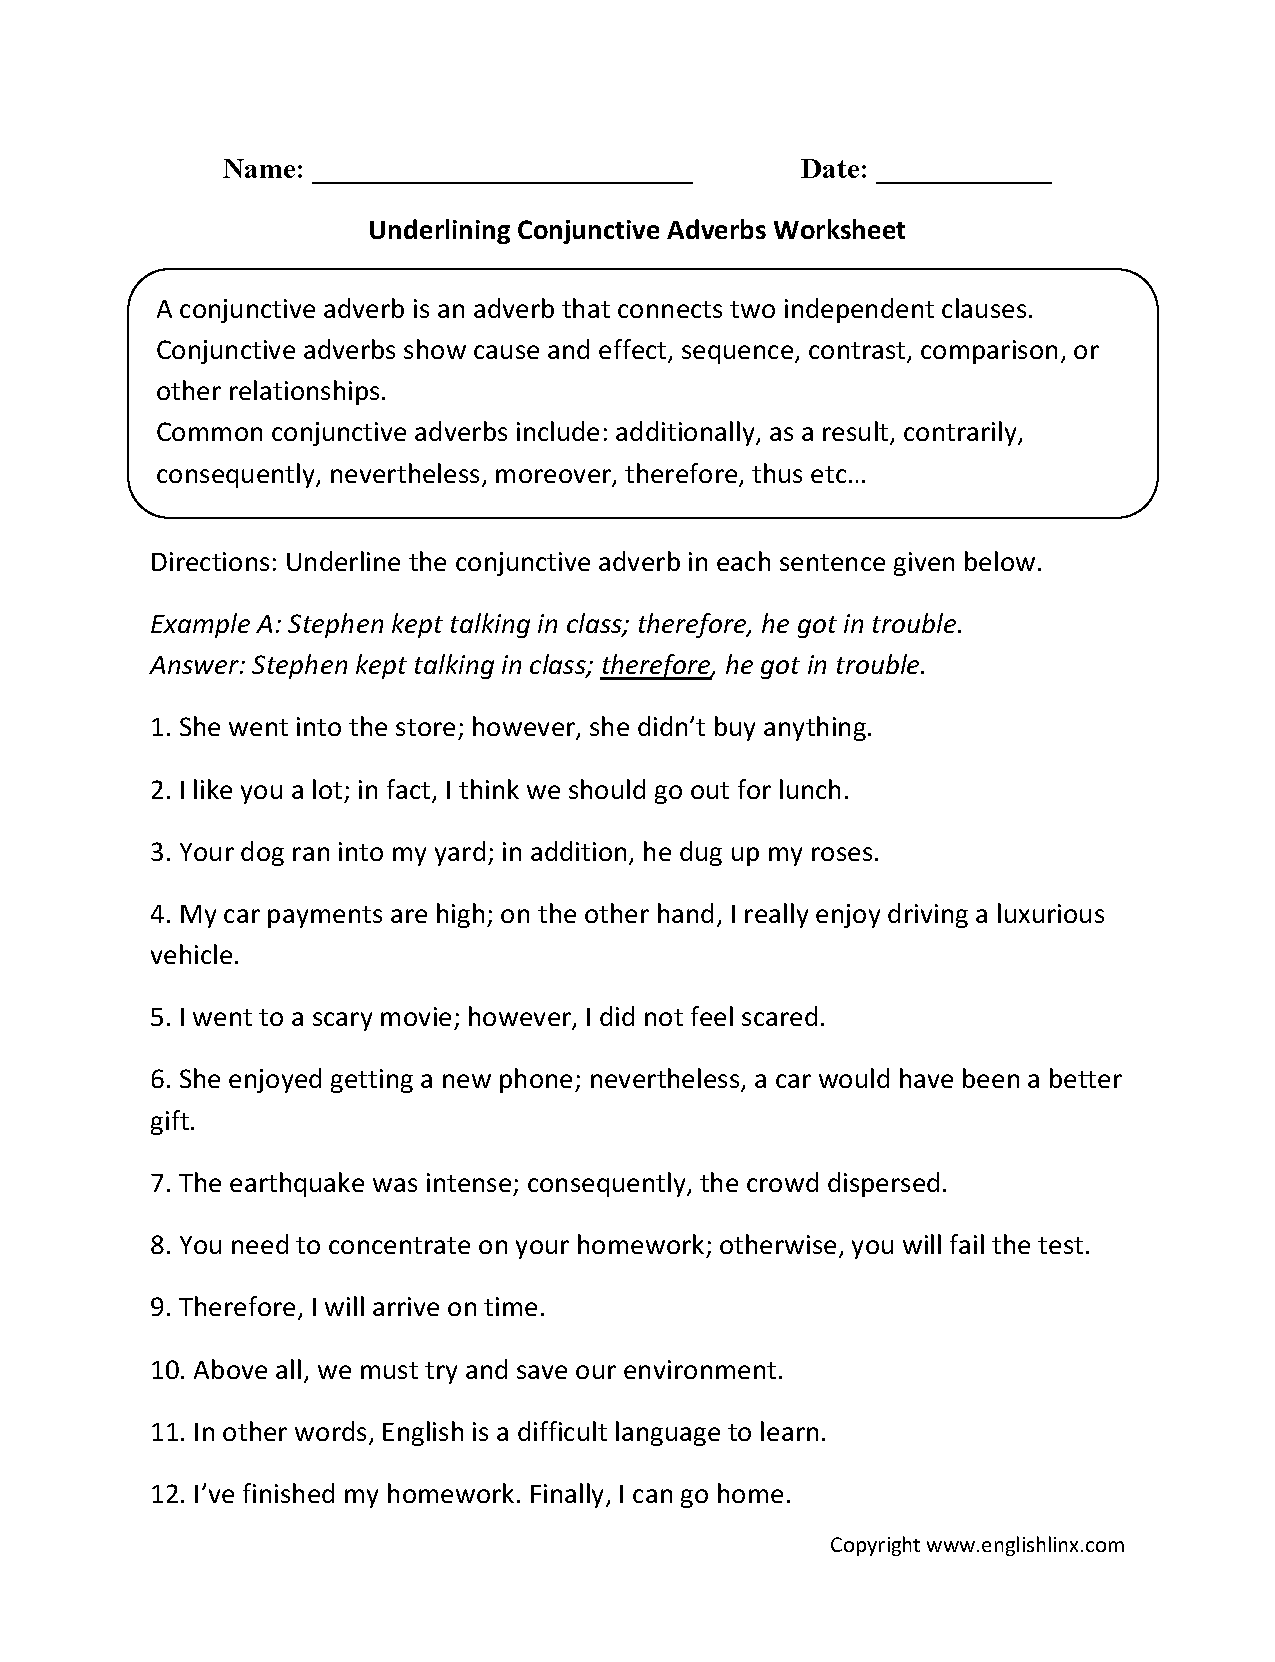 Aldiablosus  Surprising Englishlinxcom  Conjunctions Worksheets With Heavenly Worksheet With Beauteous Acrostic Poem Worksheet Also Expressions Worksheets In Addition Solving Equations With Variables Worksheets And Subject Verb Agreement Worksheet With Answers As Well As What Is Worksheet Additionally Geometry Worksheet Pdf From Englishlinxcom With Aldiablosus  Heavenly Englishlinxcom  Conjunctions Worksheets With Beauteous Worksheet And Surprising Acrostic Poem Worksheet Also Expressions Worksheets In Addition Solving Equations With Variables Worksheets From Englishlinxcom